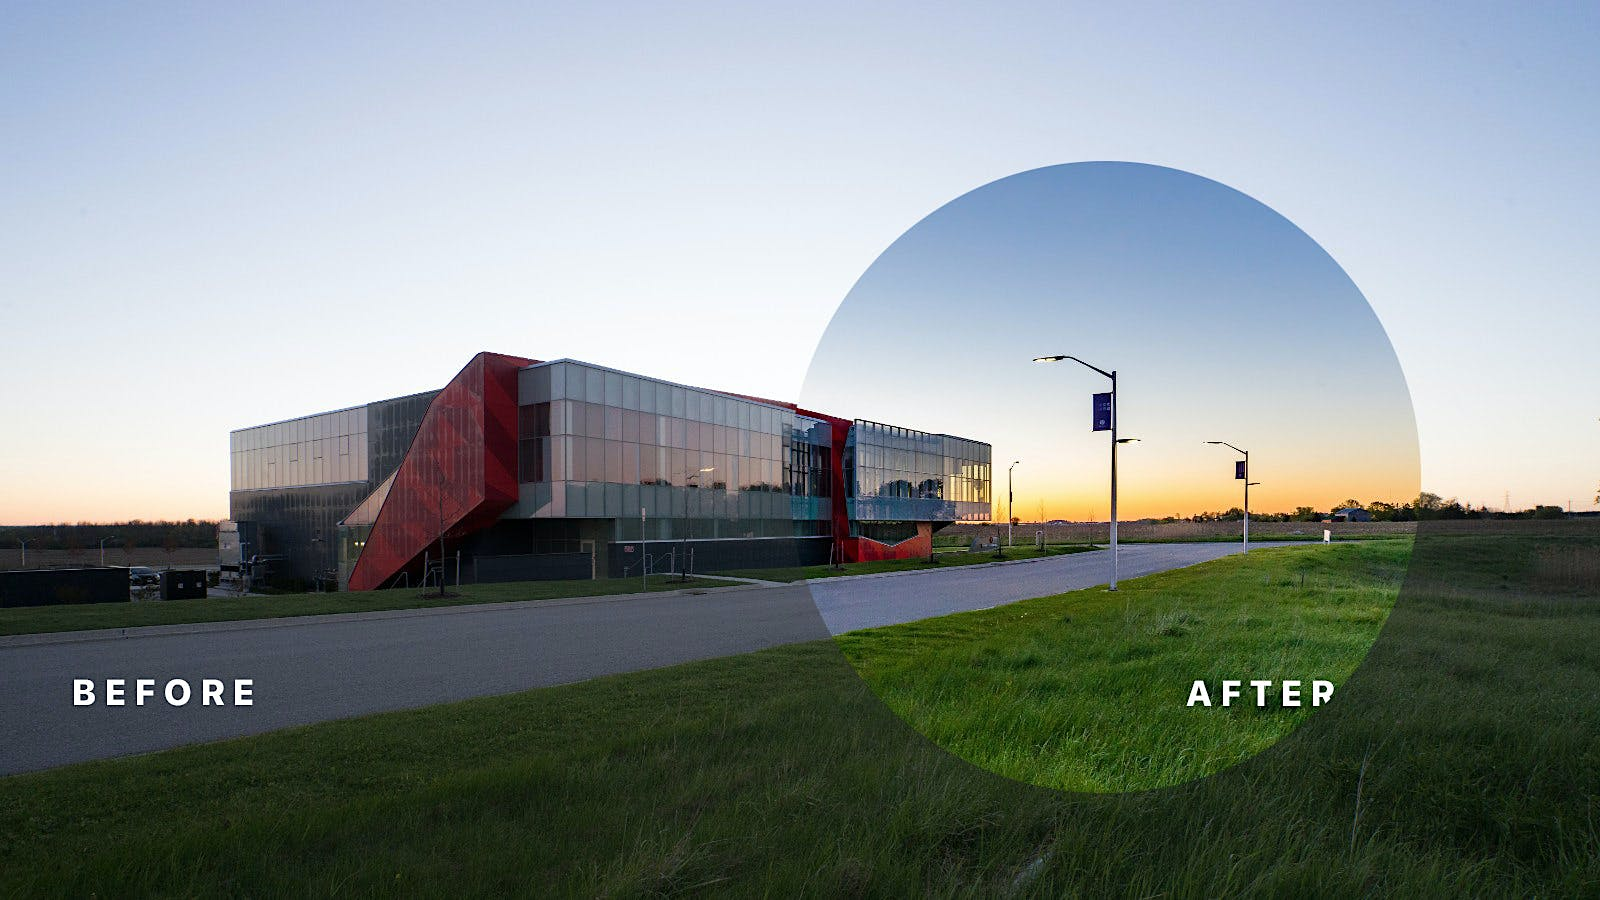 Architecture Photography Series before and after series | london ontario photographer | scott webb